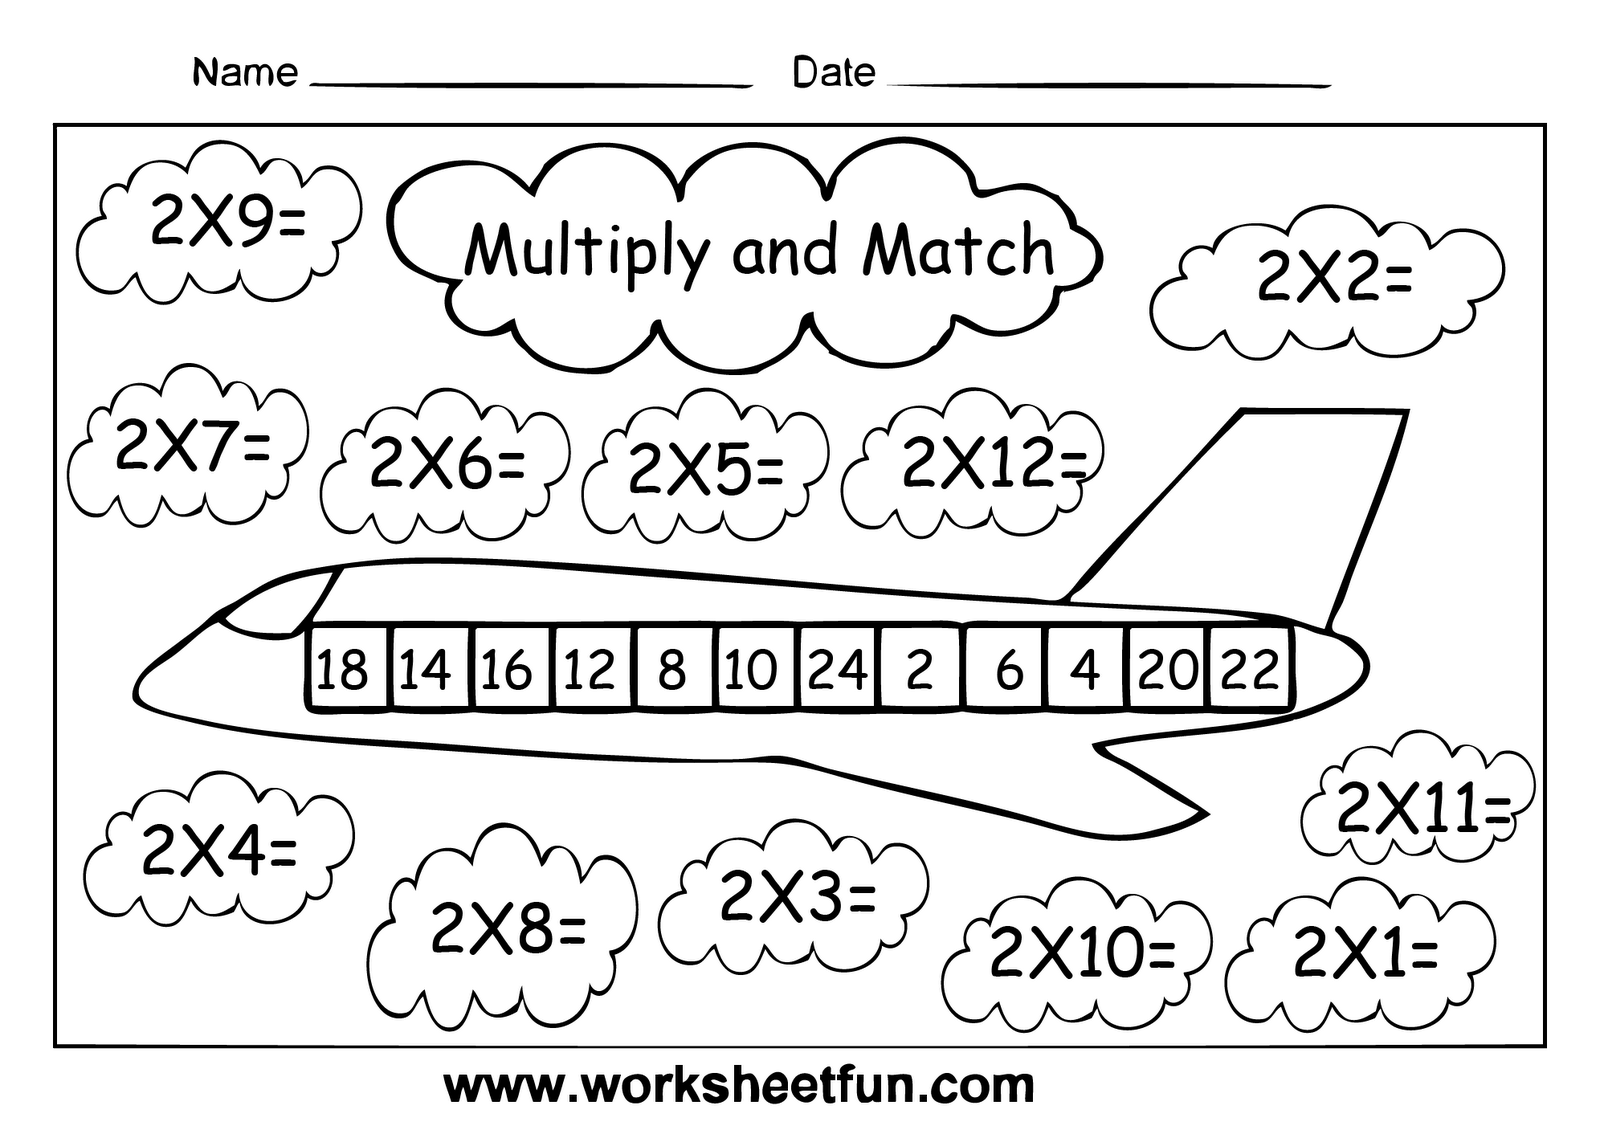 Worksheet 7901022 Maths Times Tables Worksheets Ks2 Times – 3 Times Table Worksheet